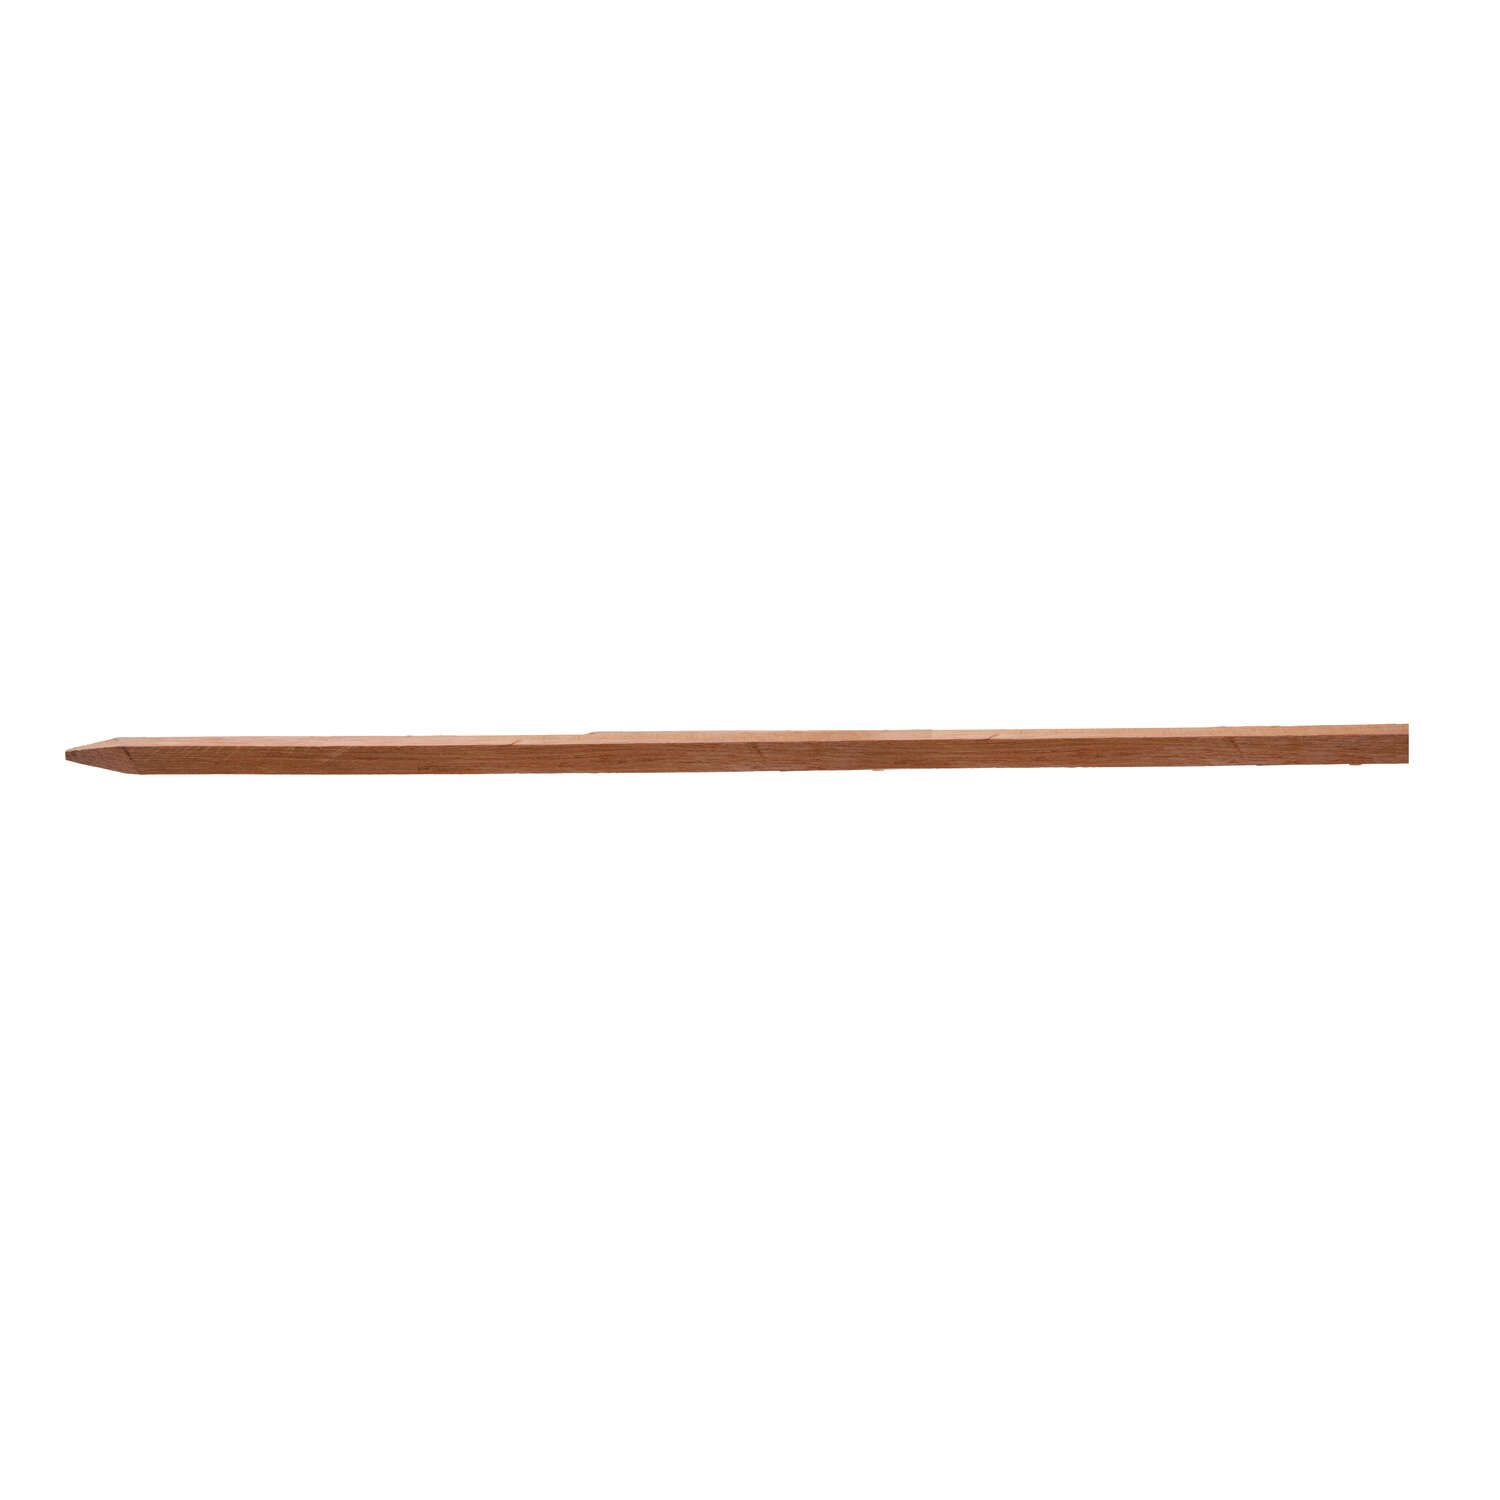 Bond  6 ft. H x 0.75 in. W x 0.75 in. D Brown  Wood  Garden Stakes